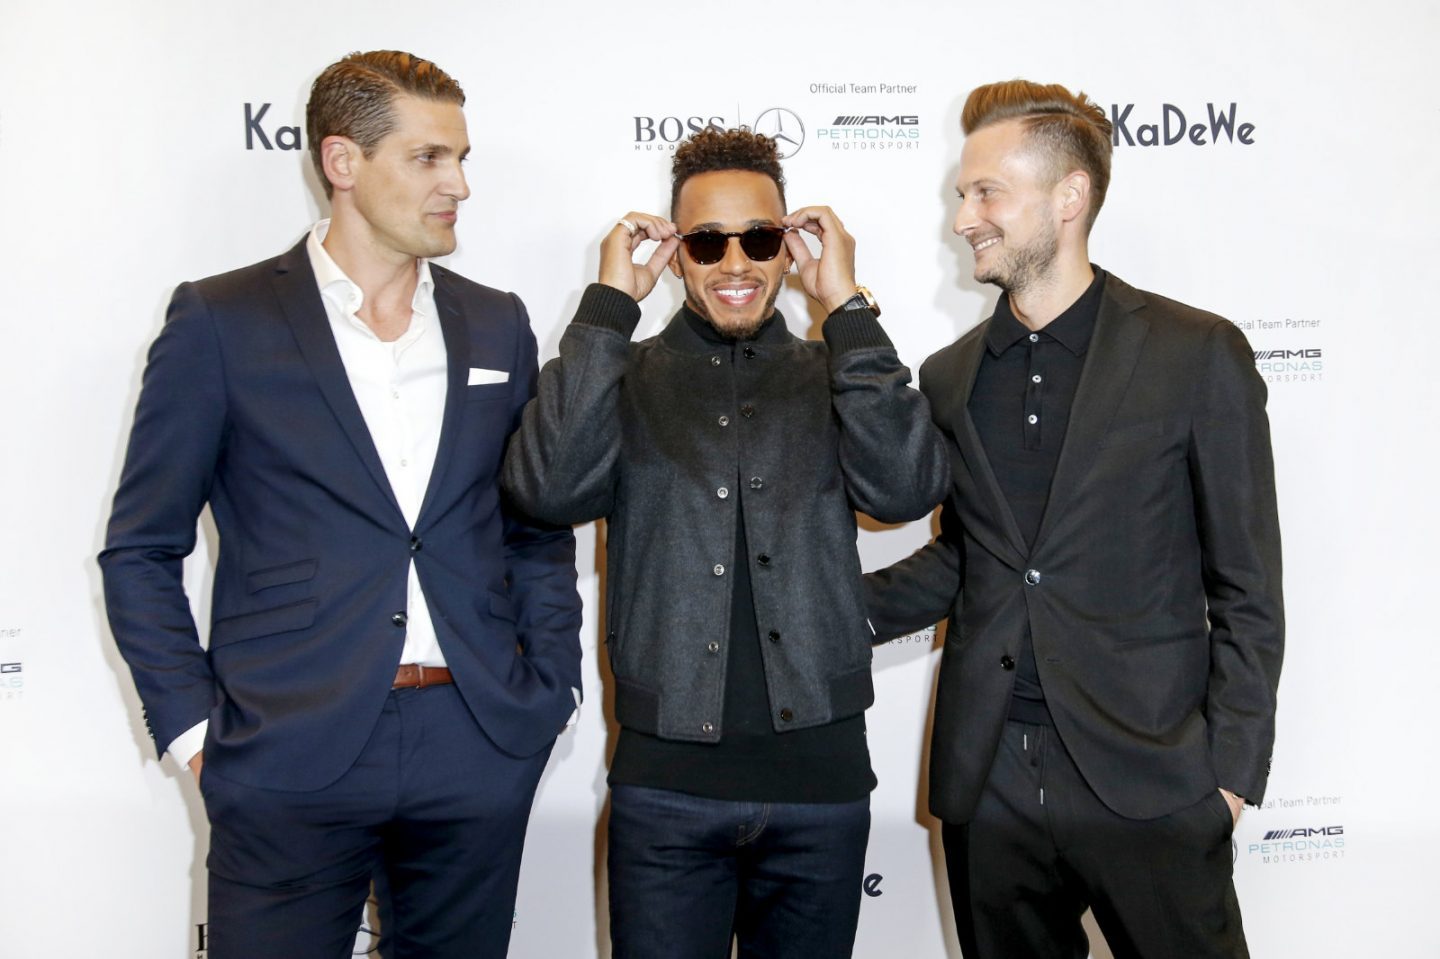 Lewis Hamilton speaks at VIP event for KaDeWe and Hugo Boss